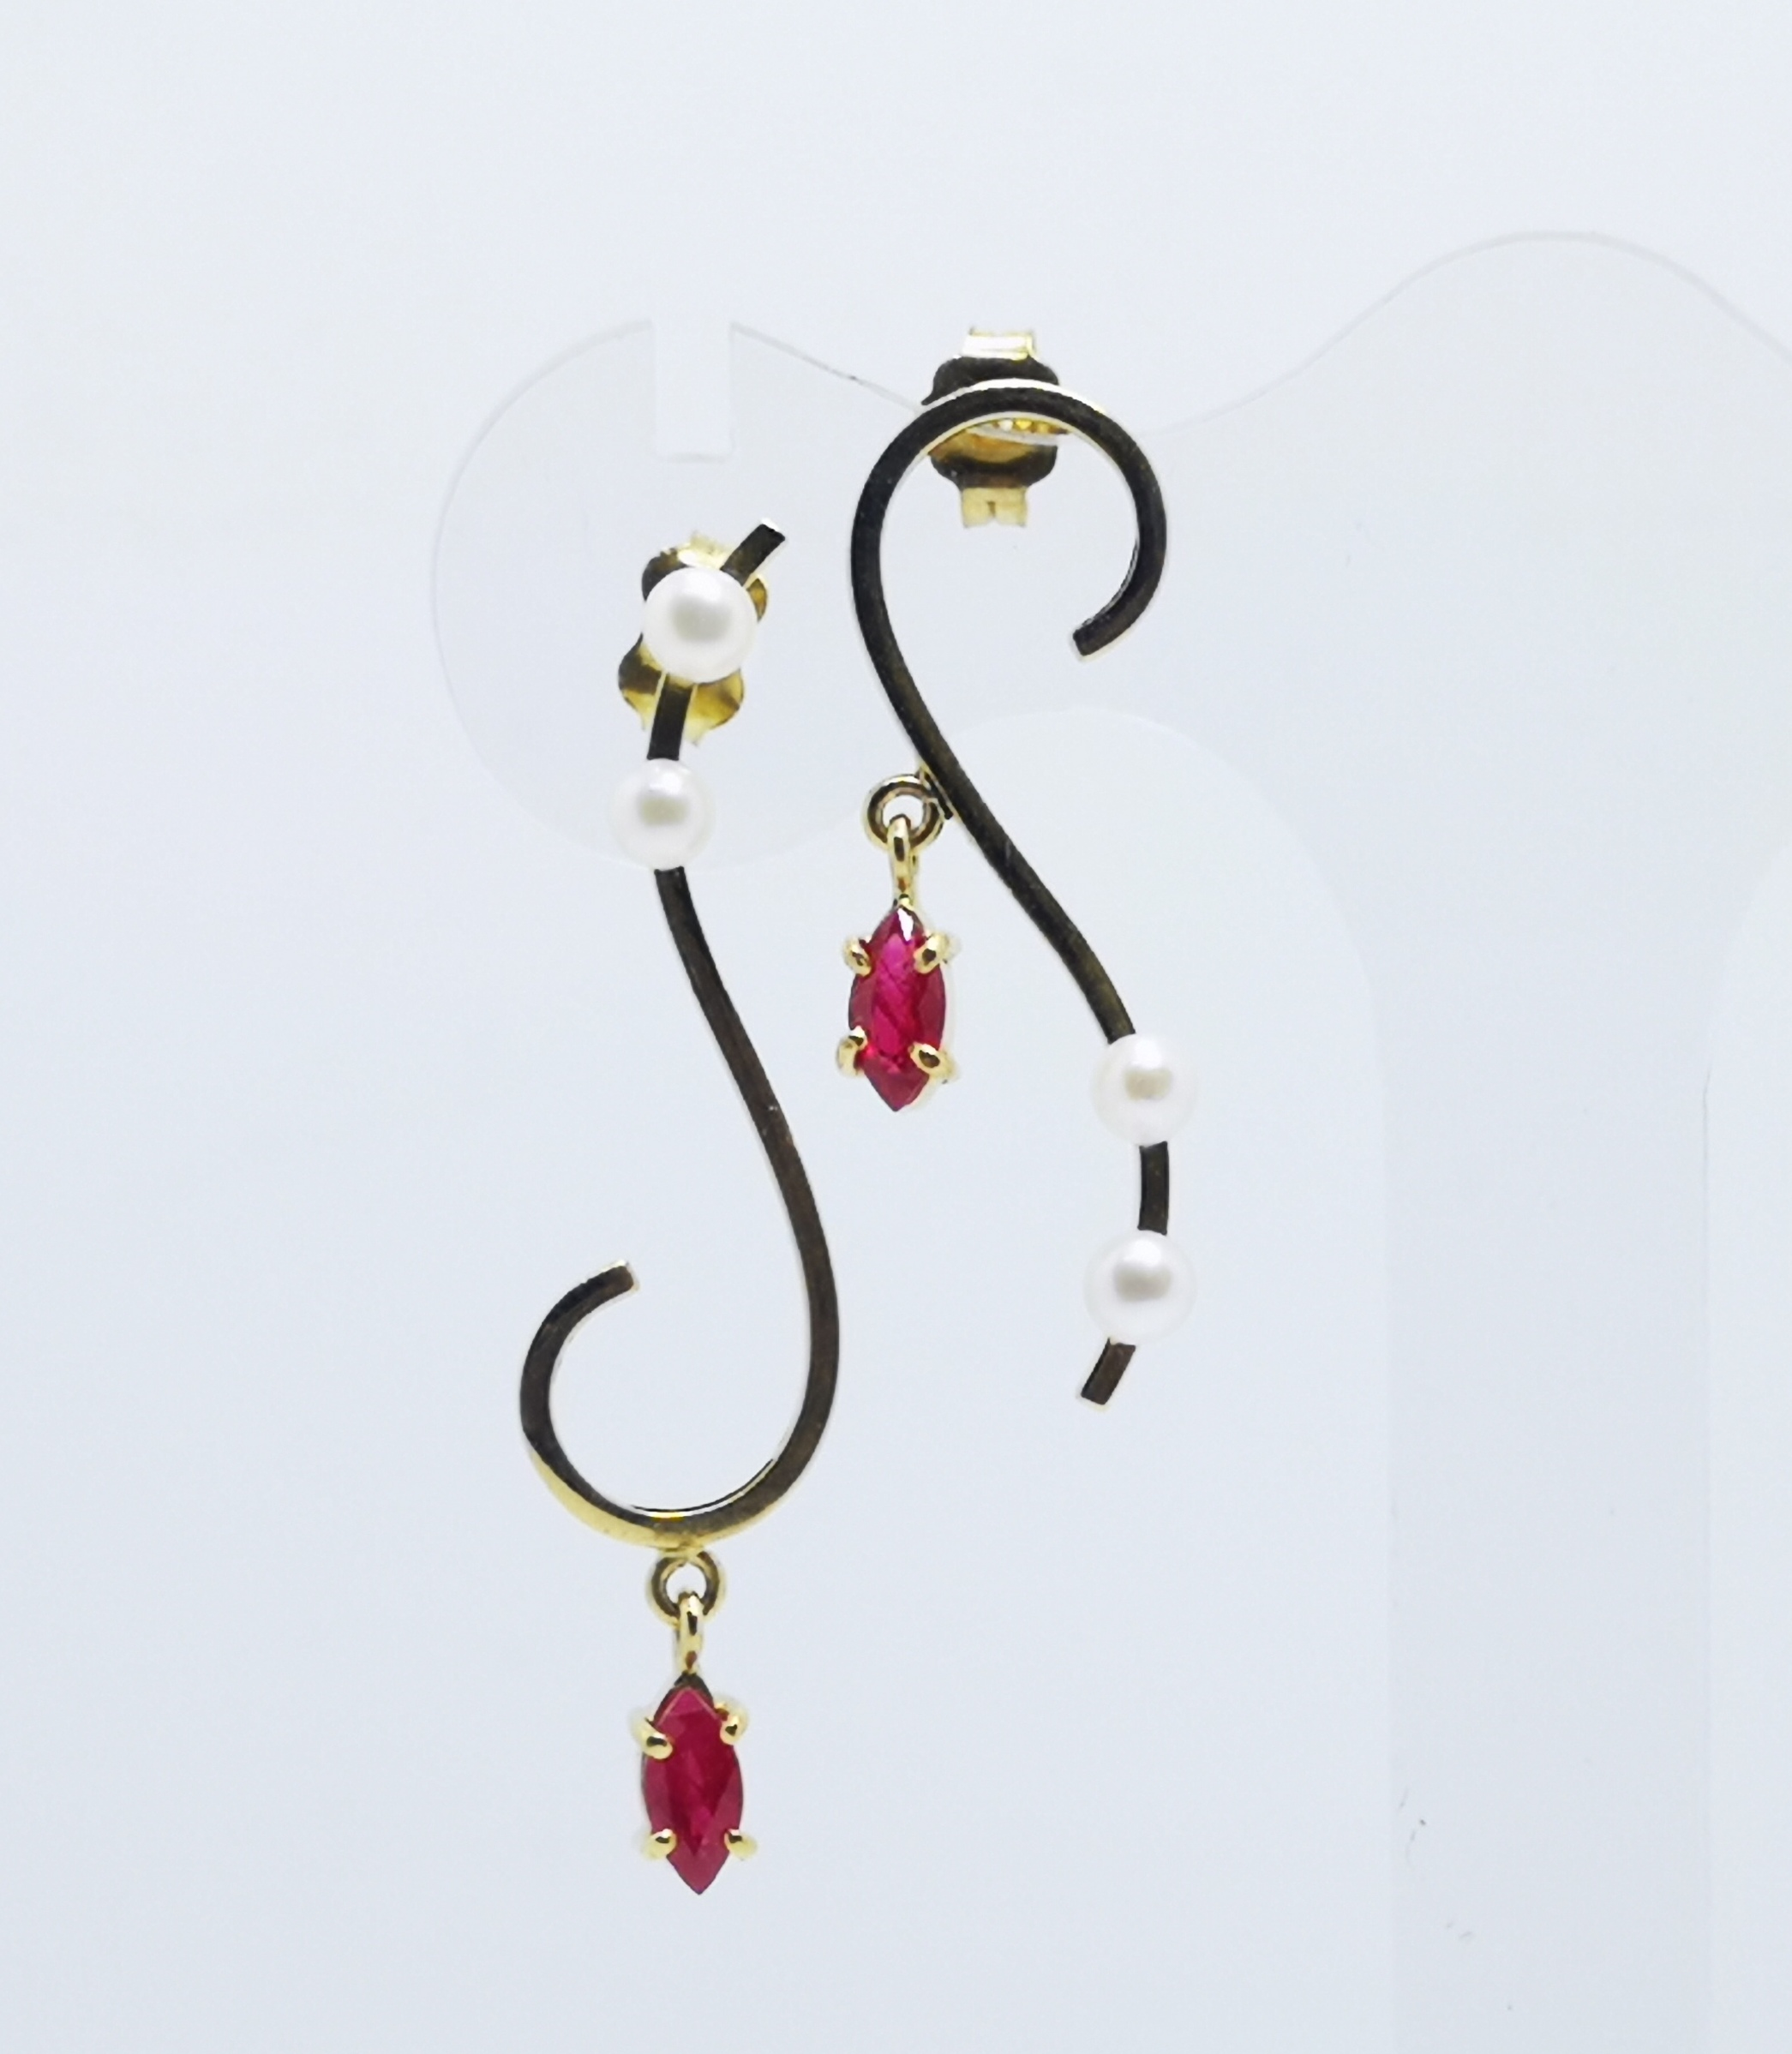 Earrings in gold 18kt with Rubies & Pearls